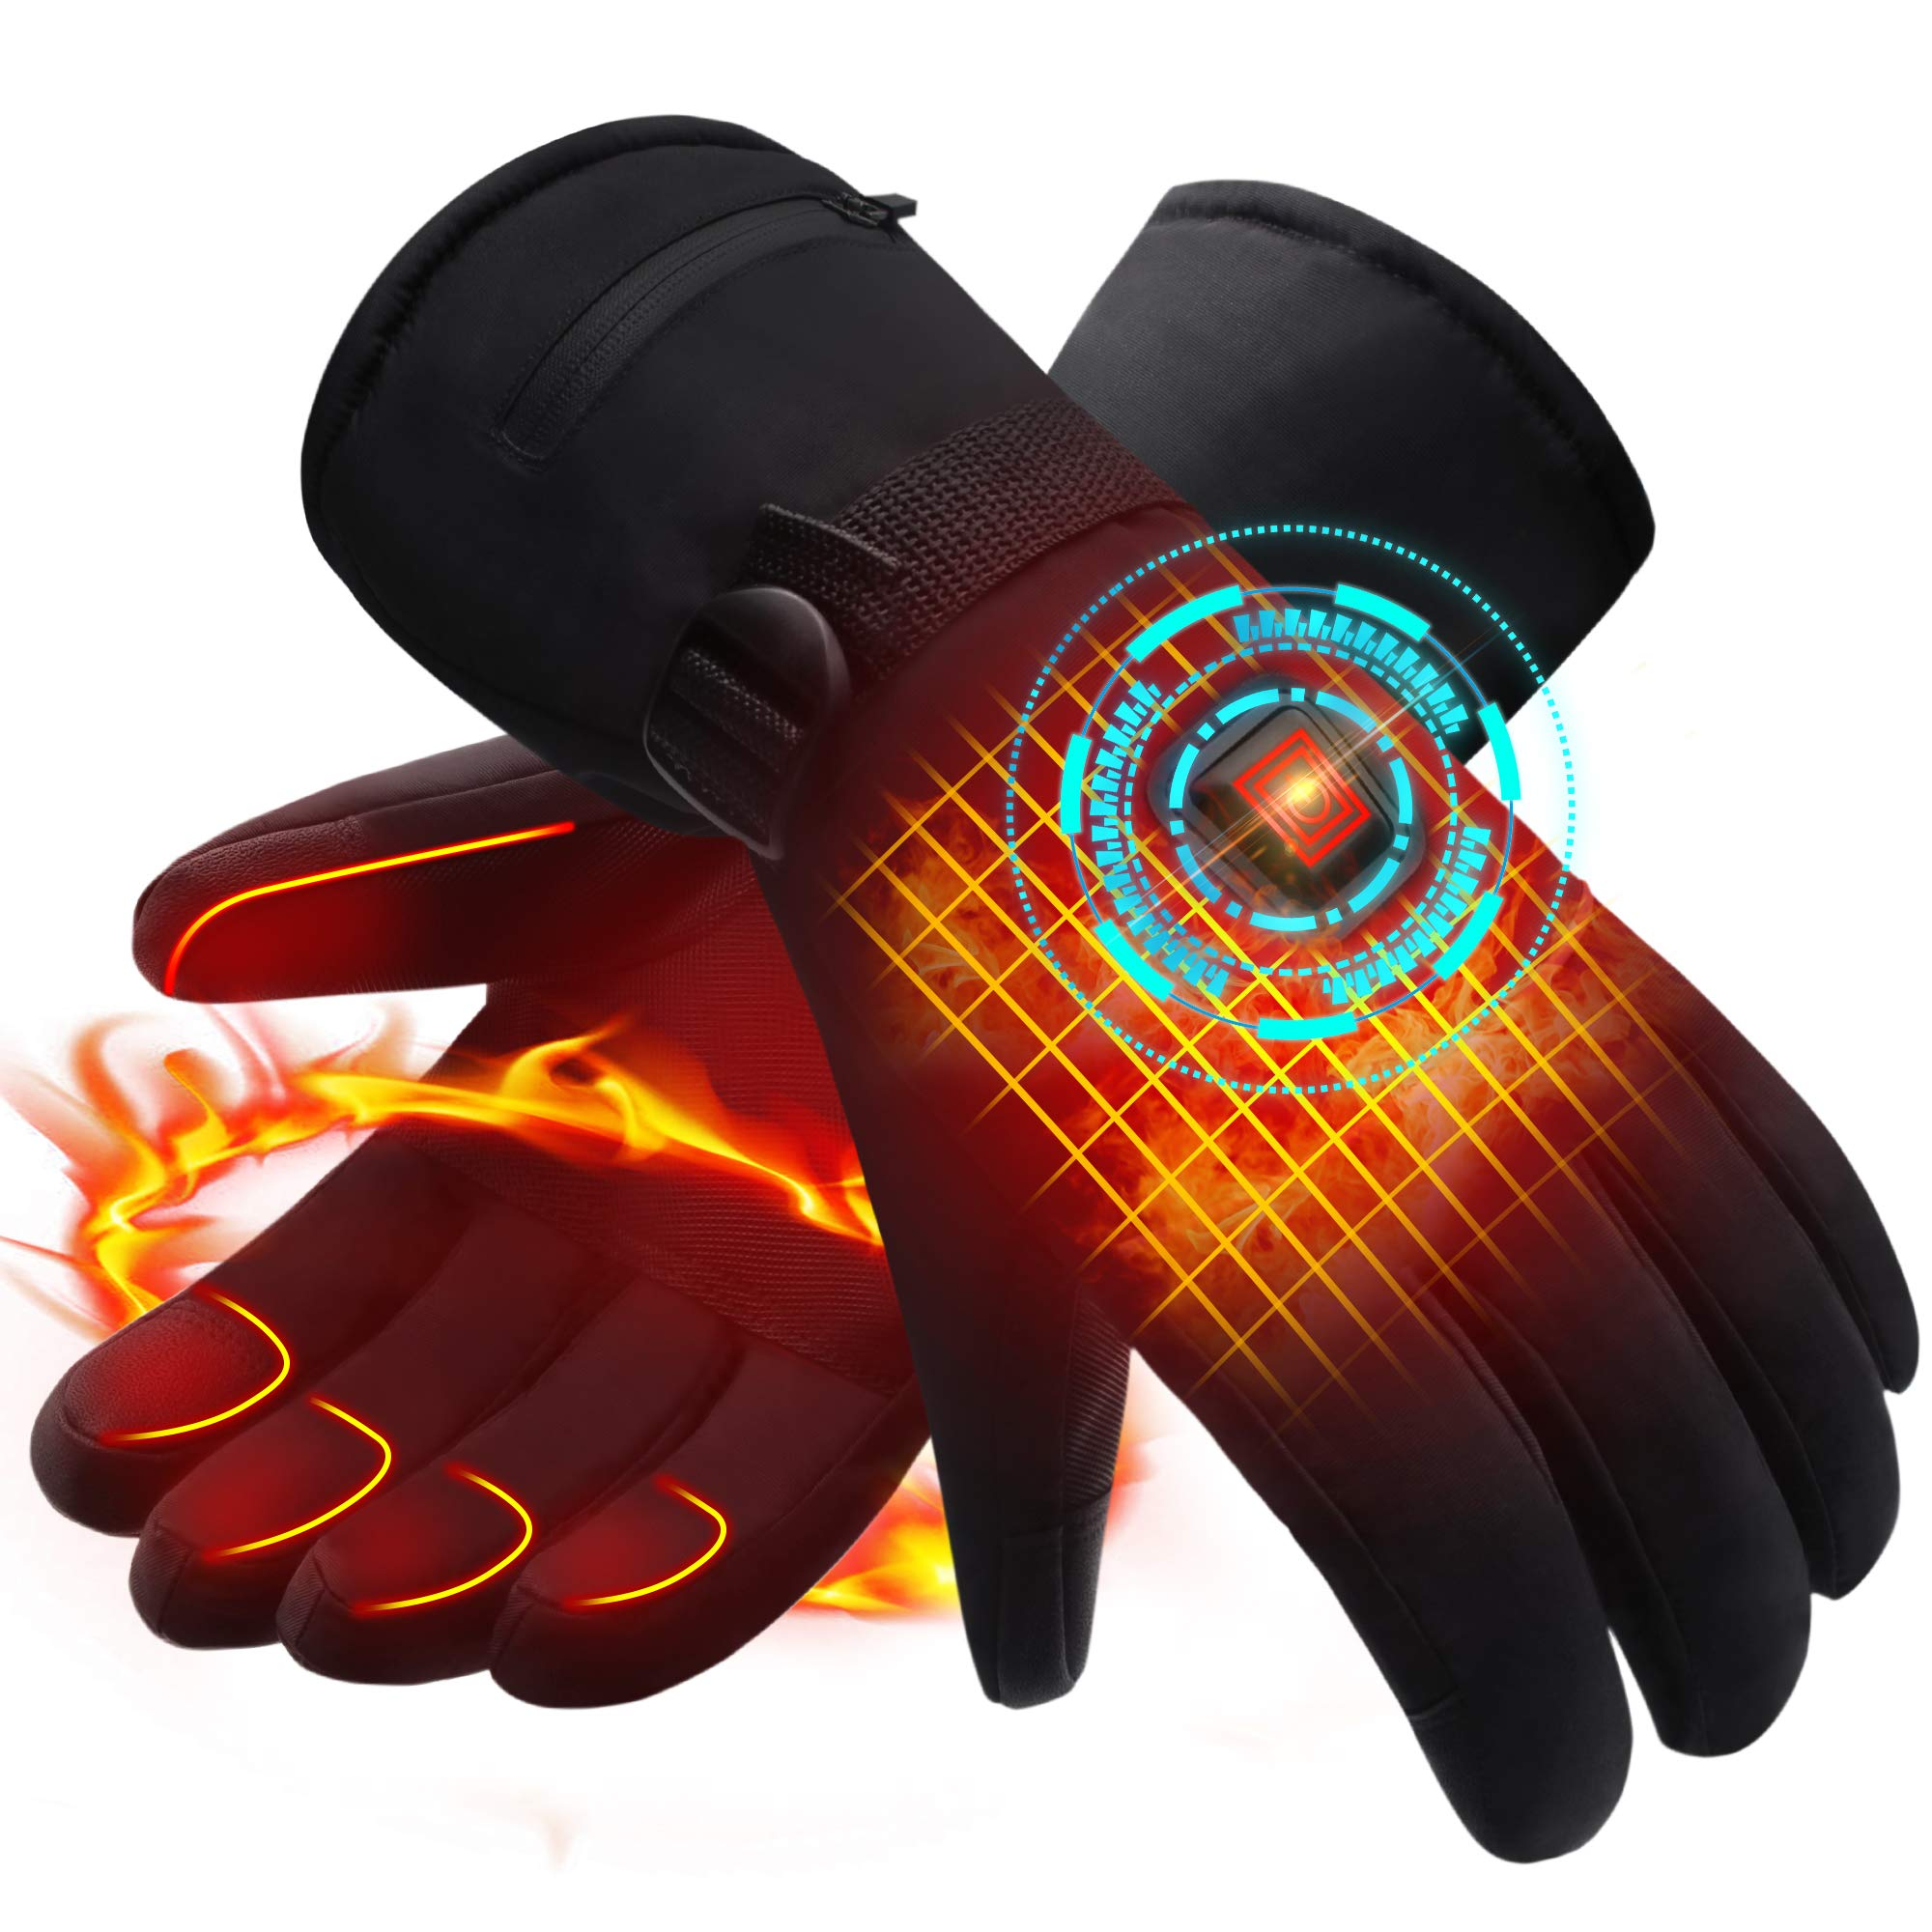 Electric Heated Gloves Rechargeable Battery Heated Gloves for Cold Weather Men's Novelty Gloves